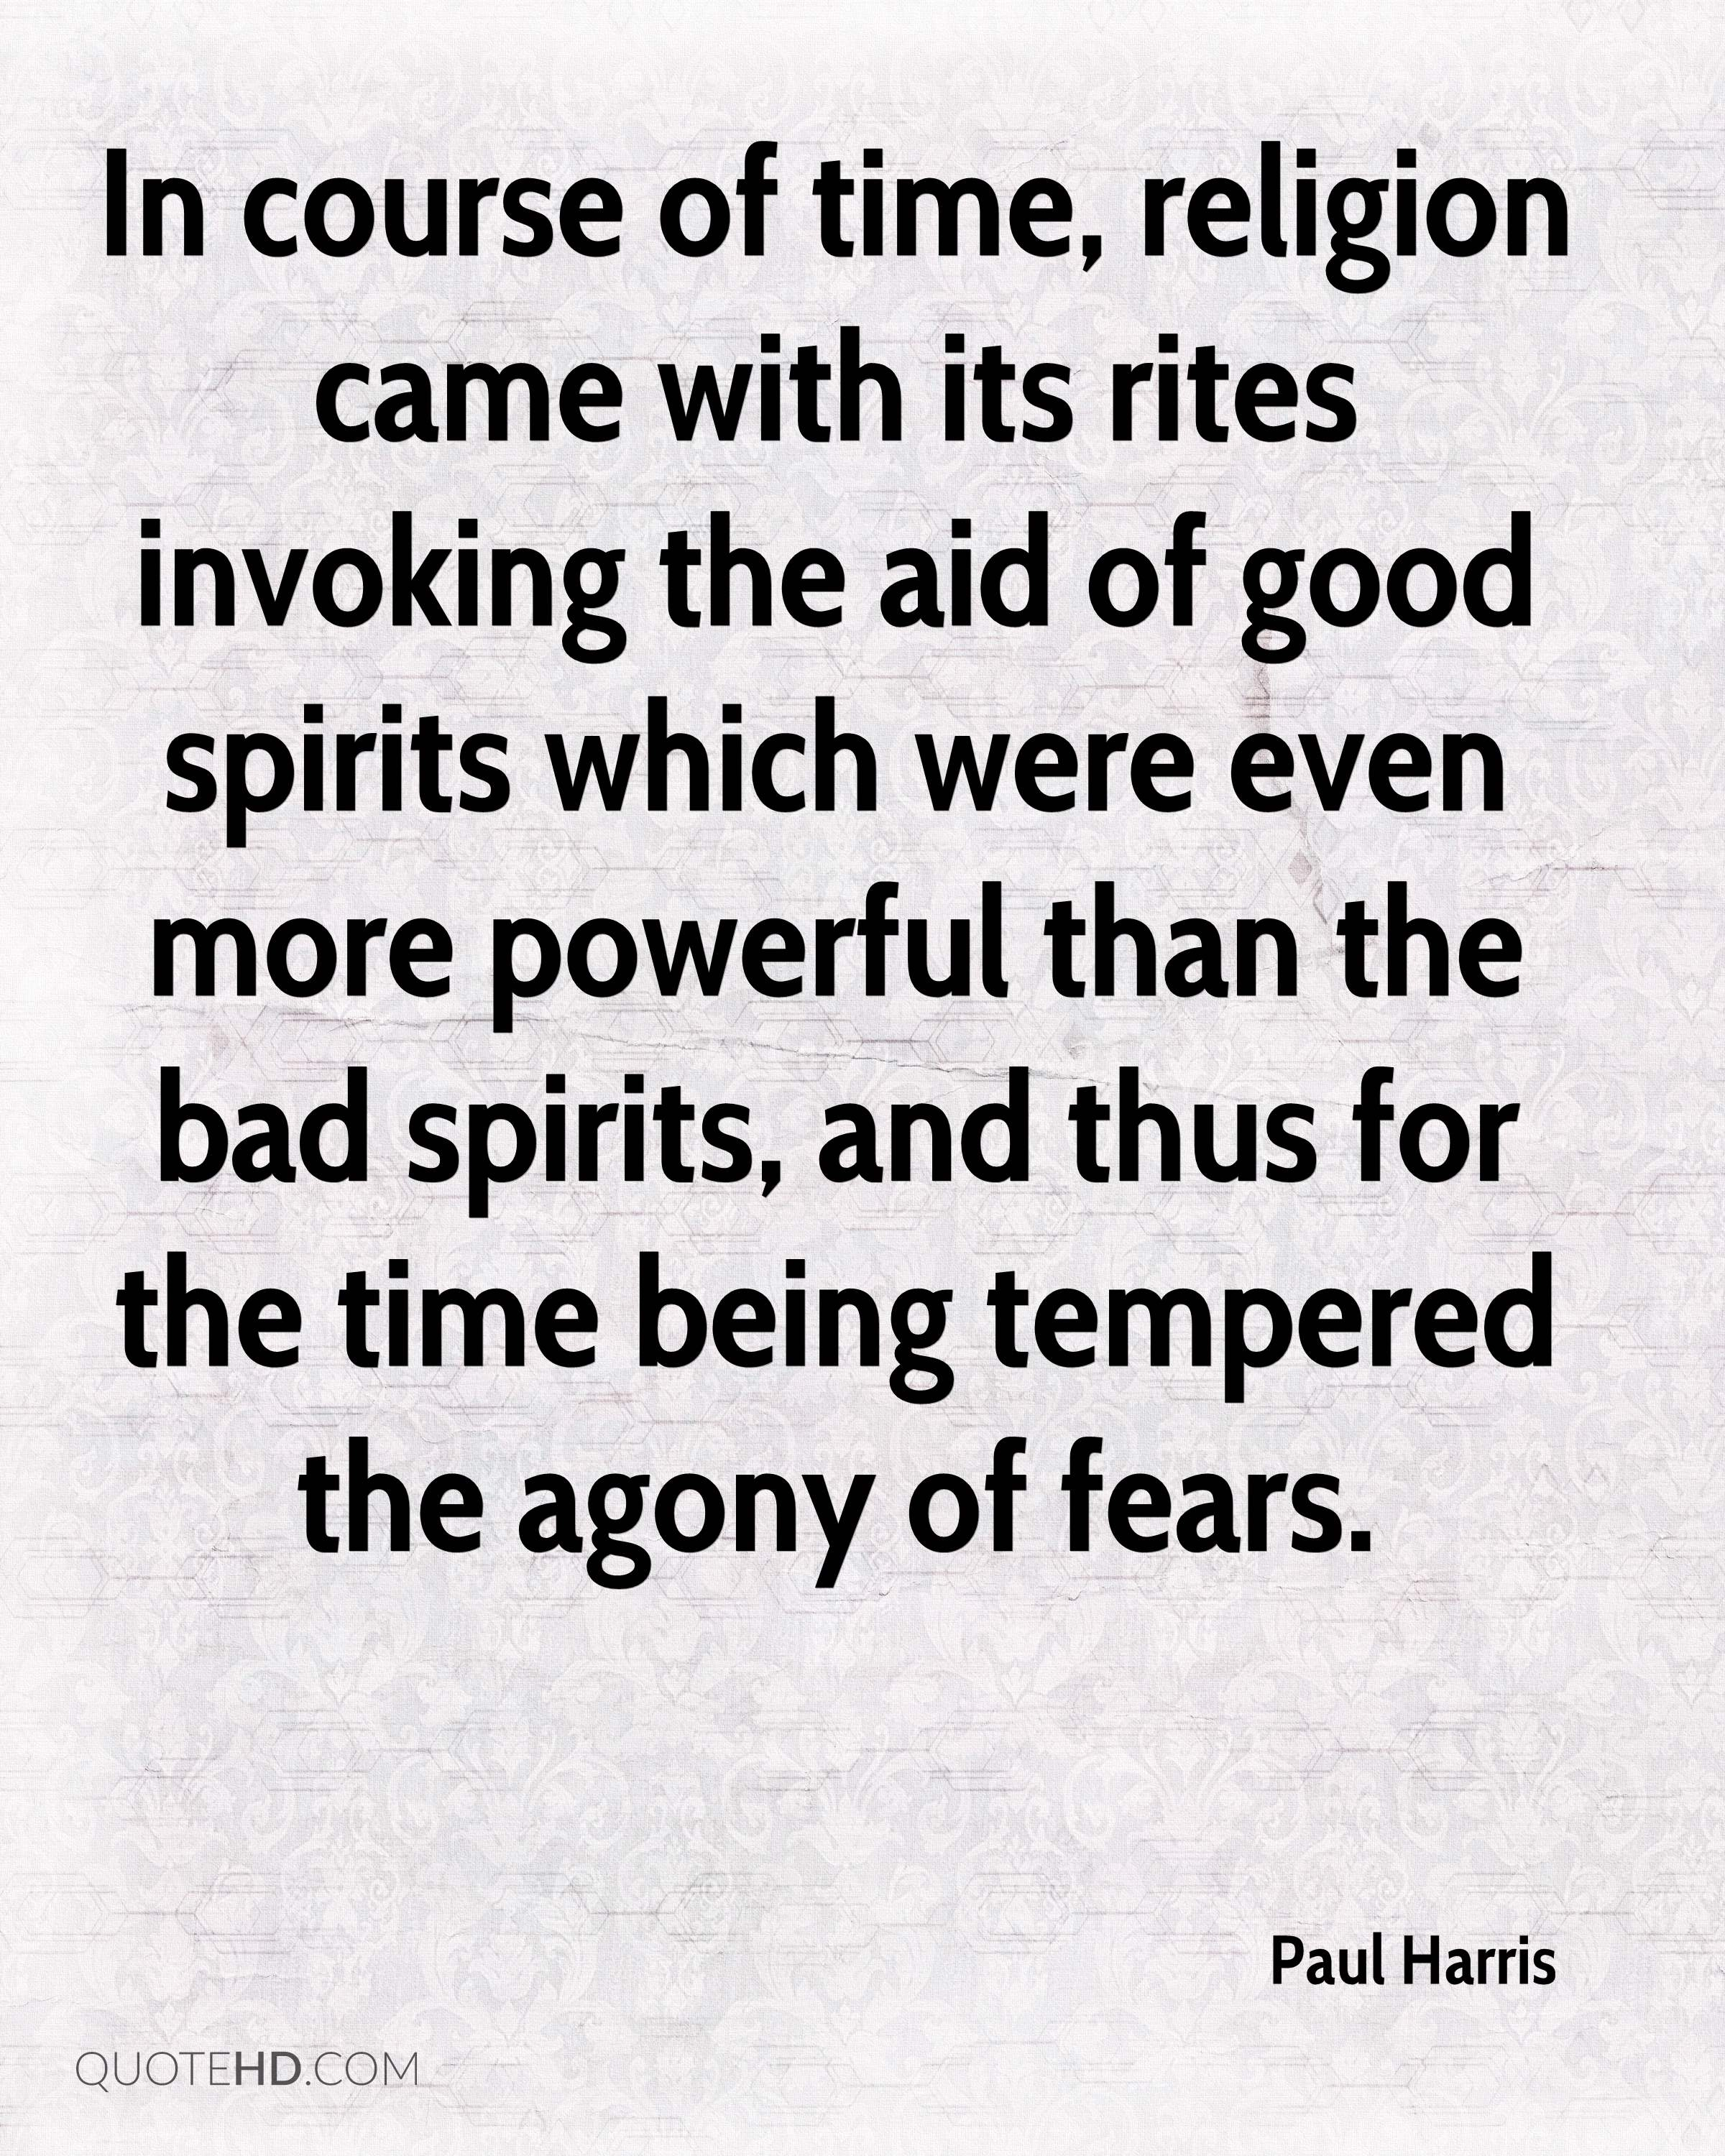 In course of time, religion came with its rites invoking the aid of good spirits which were even more powerful than the bad spirits, and thus for the time being tempered the agony of fears.